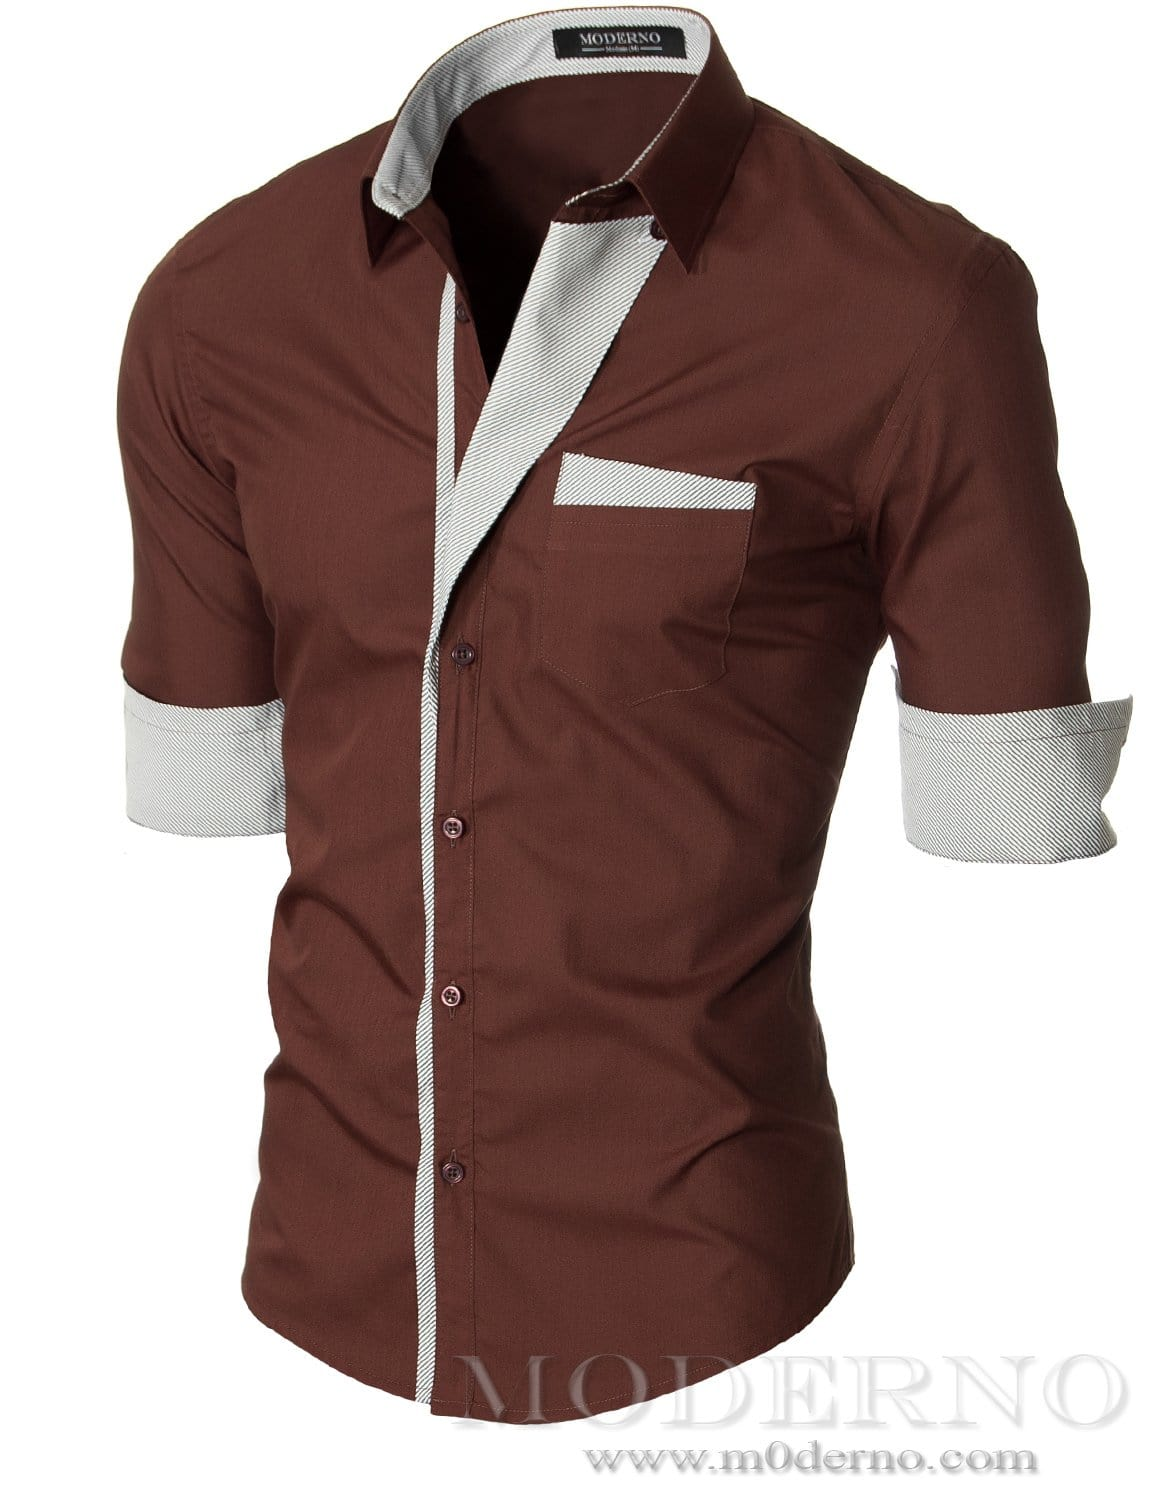 Slim fit mens brown button down shirt by moderno vgds41ls for Mens fitted long sleeve dress shirts